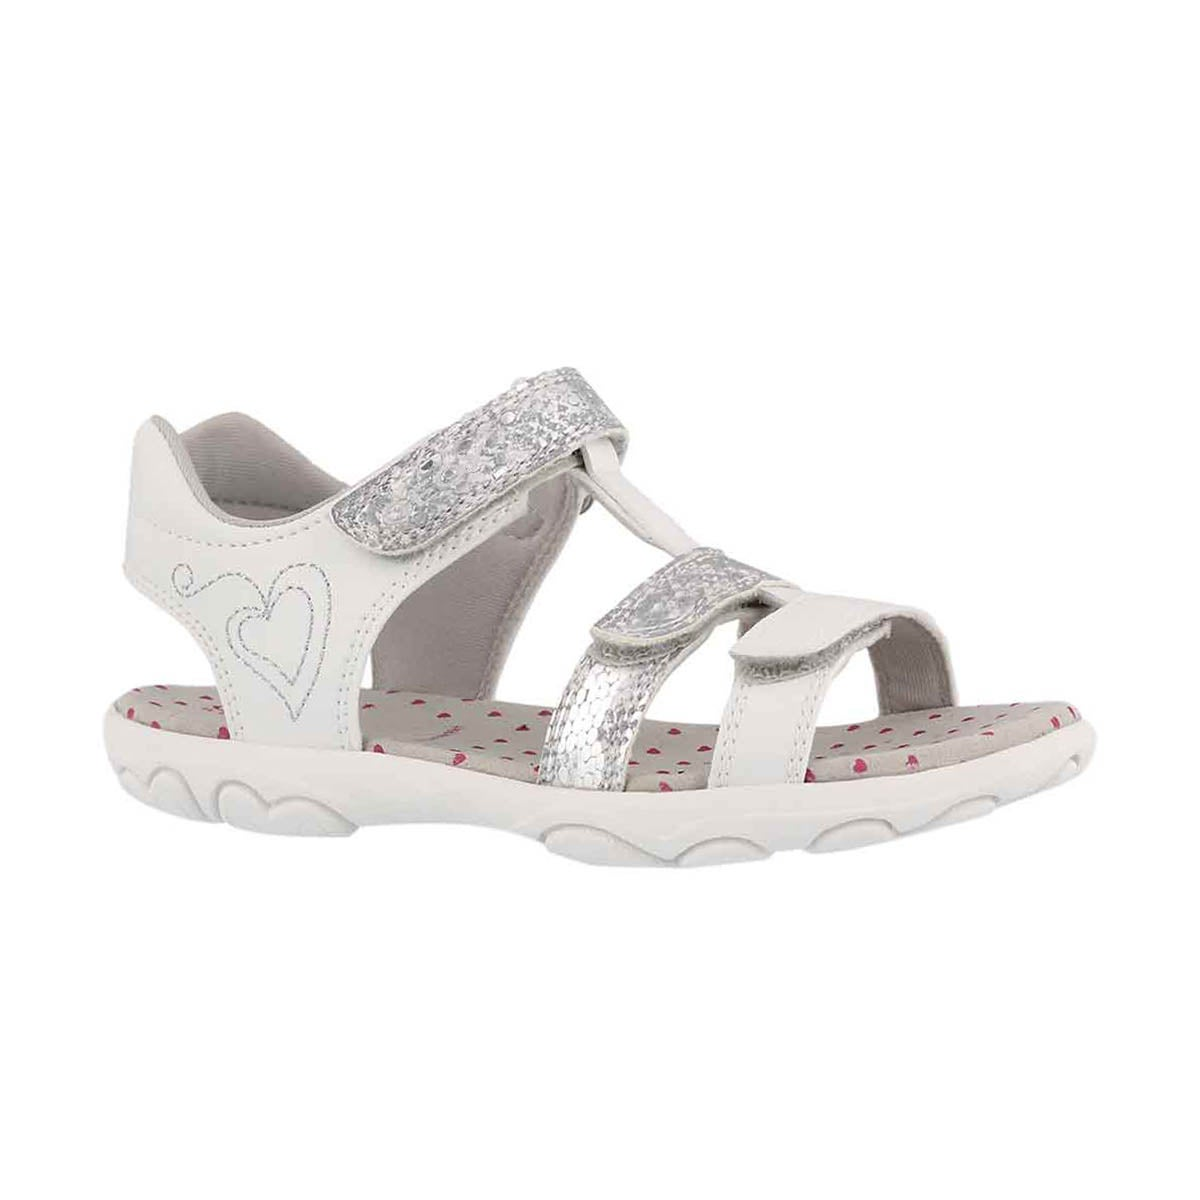 Girls' JR CUORE white/light grey casual sandals